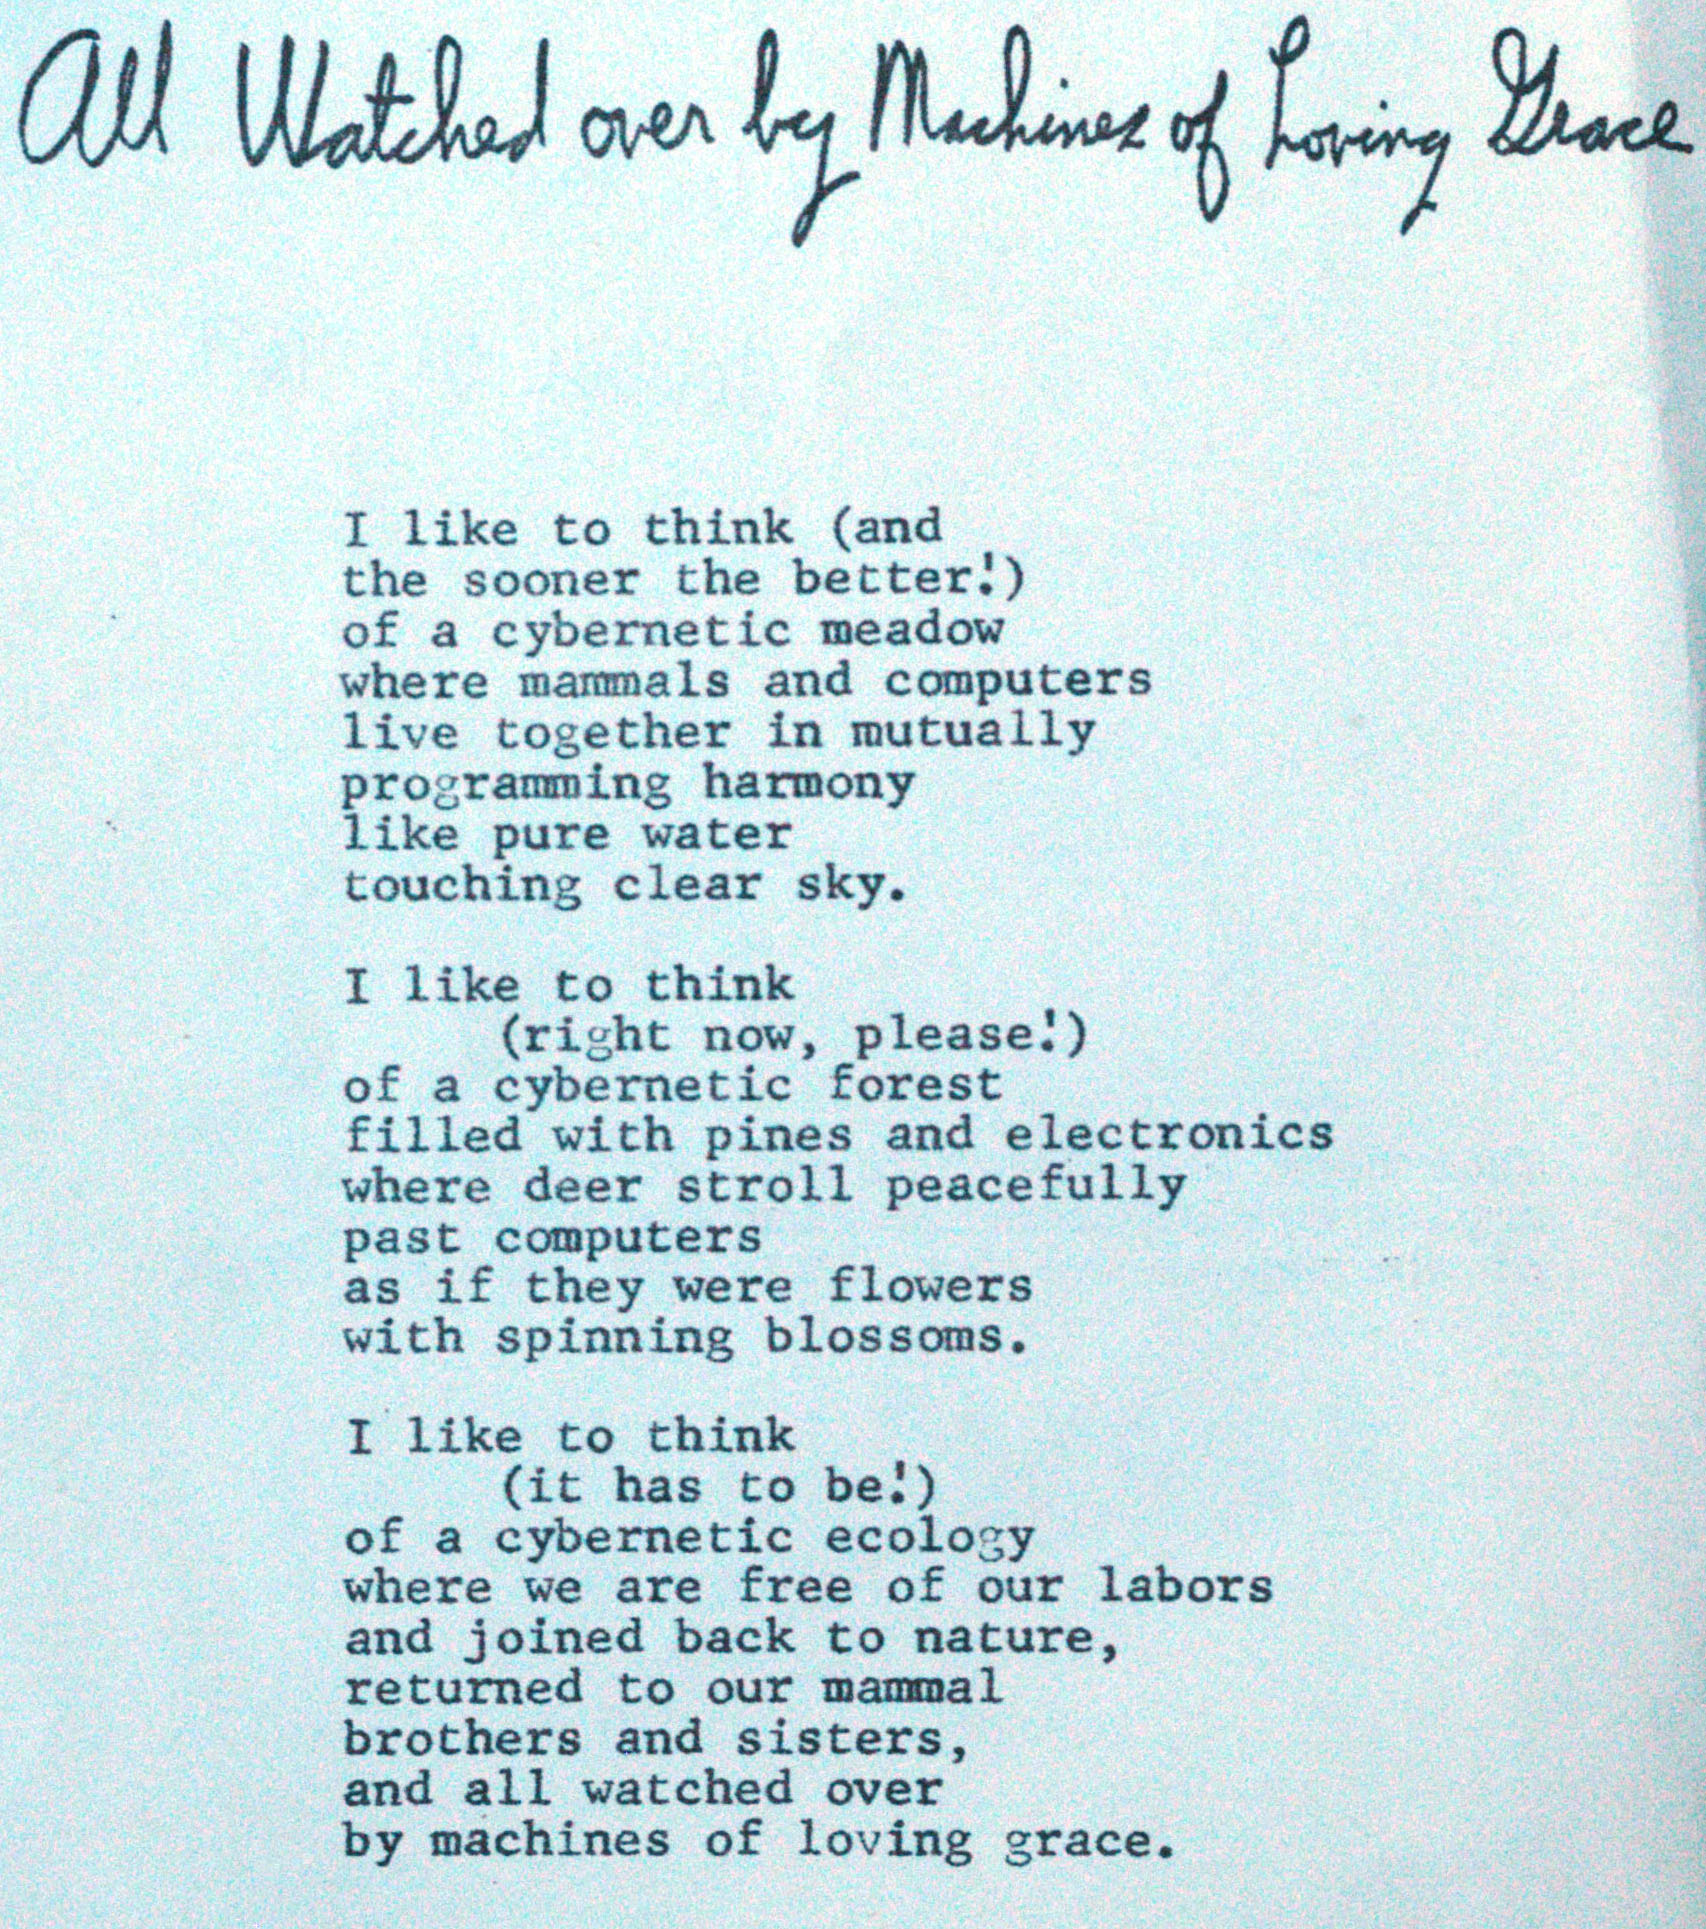 files/images/Brautigan-60-edited.jpg, size: 810456 bytes, type:  image/jpeg